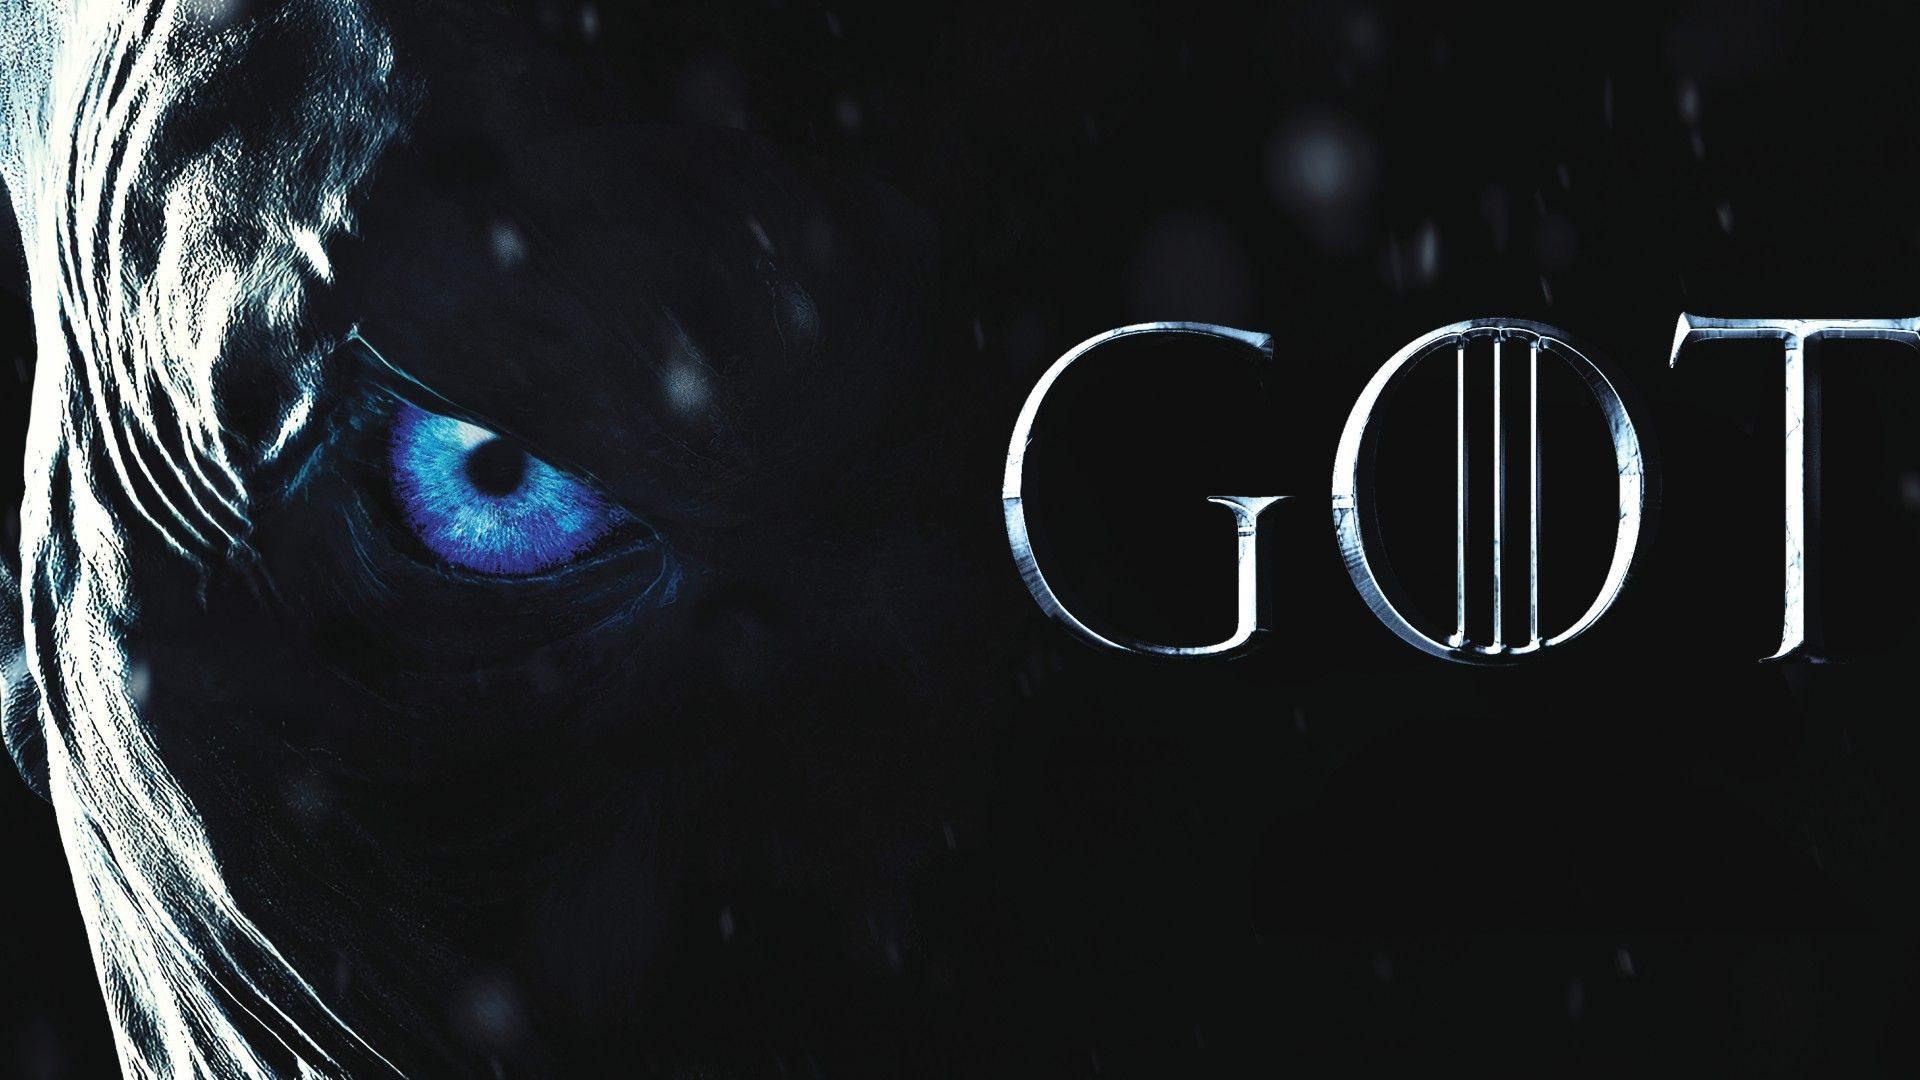 Game Of Thrones The Night King Season 7 4k 8k Wallpapers Night King Wallpaper Pictures 4k Wallpaper For Mobile